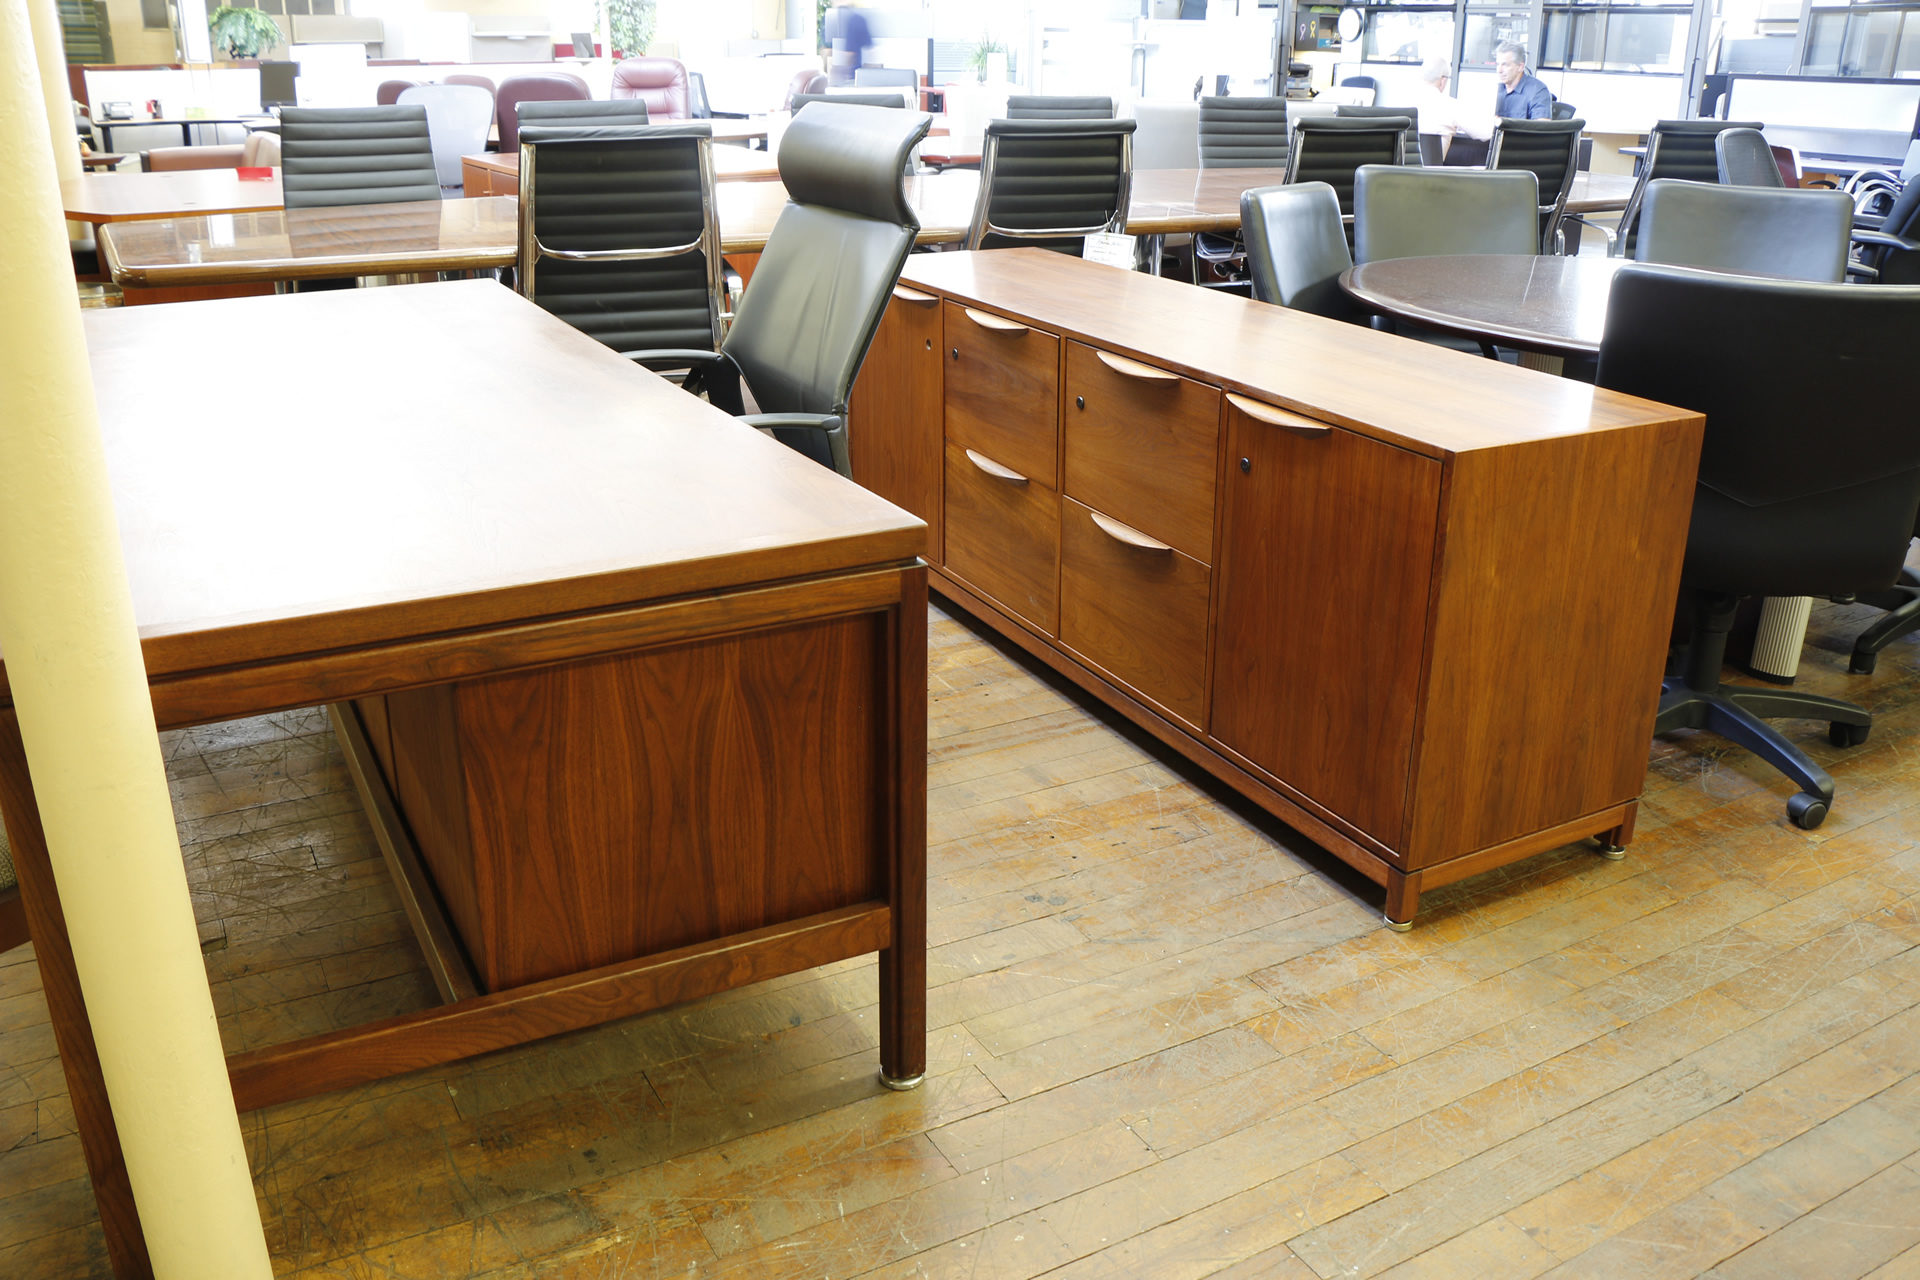 peartreeofficefurniture_peartreeofficefurniture_mg_4380.jpg